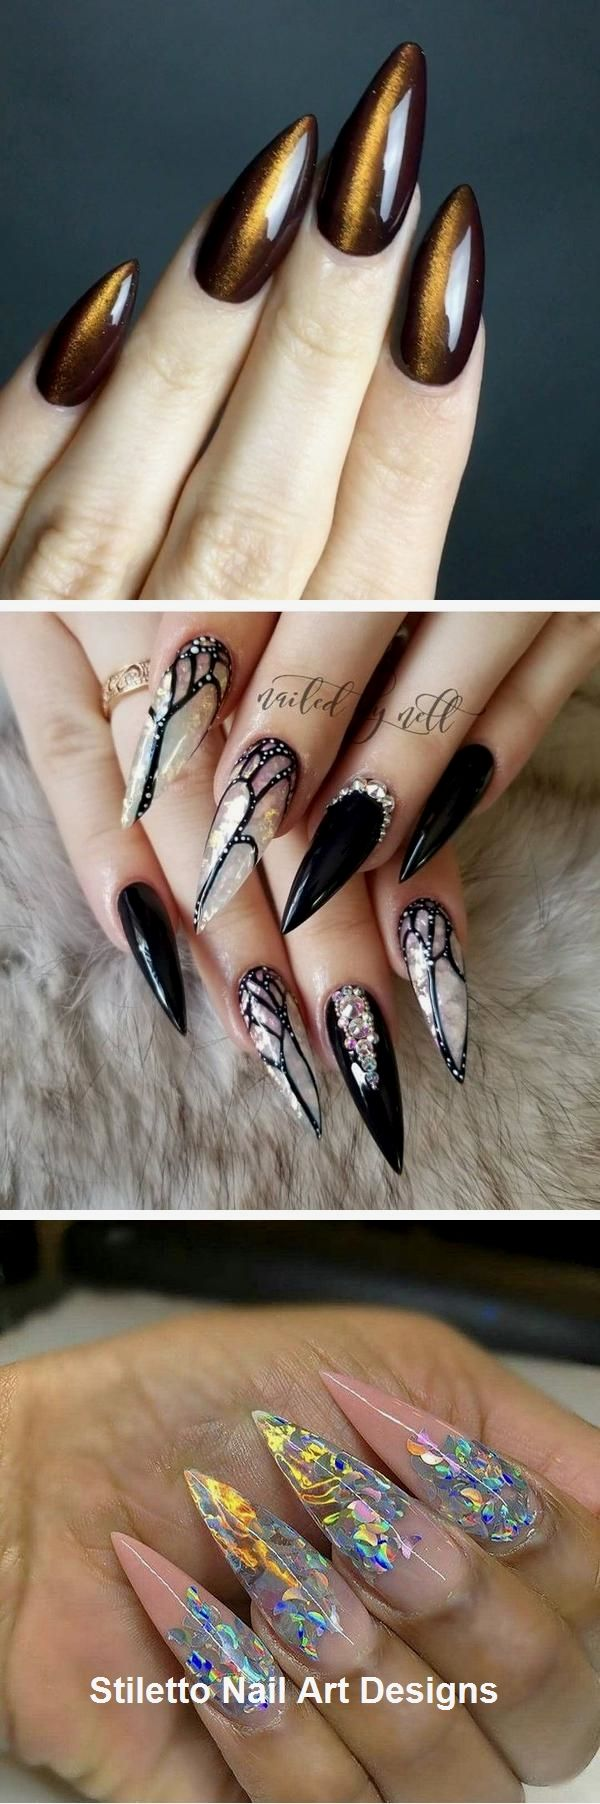 30 Ideen für großartige Stiletto-Nageldesigns #nailart #stiletto – nail art